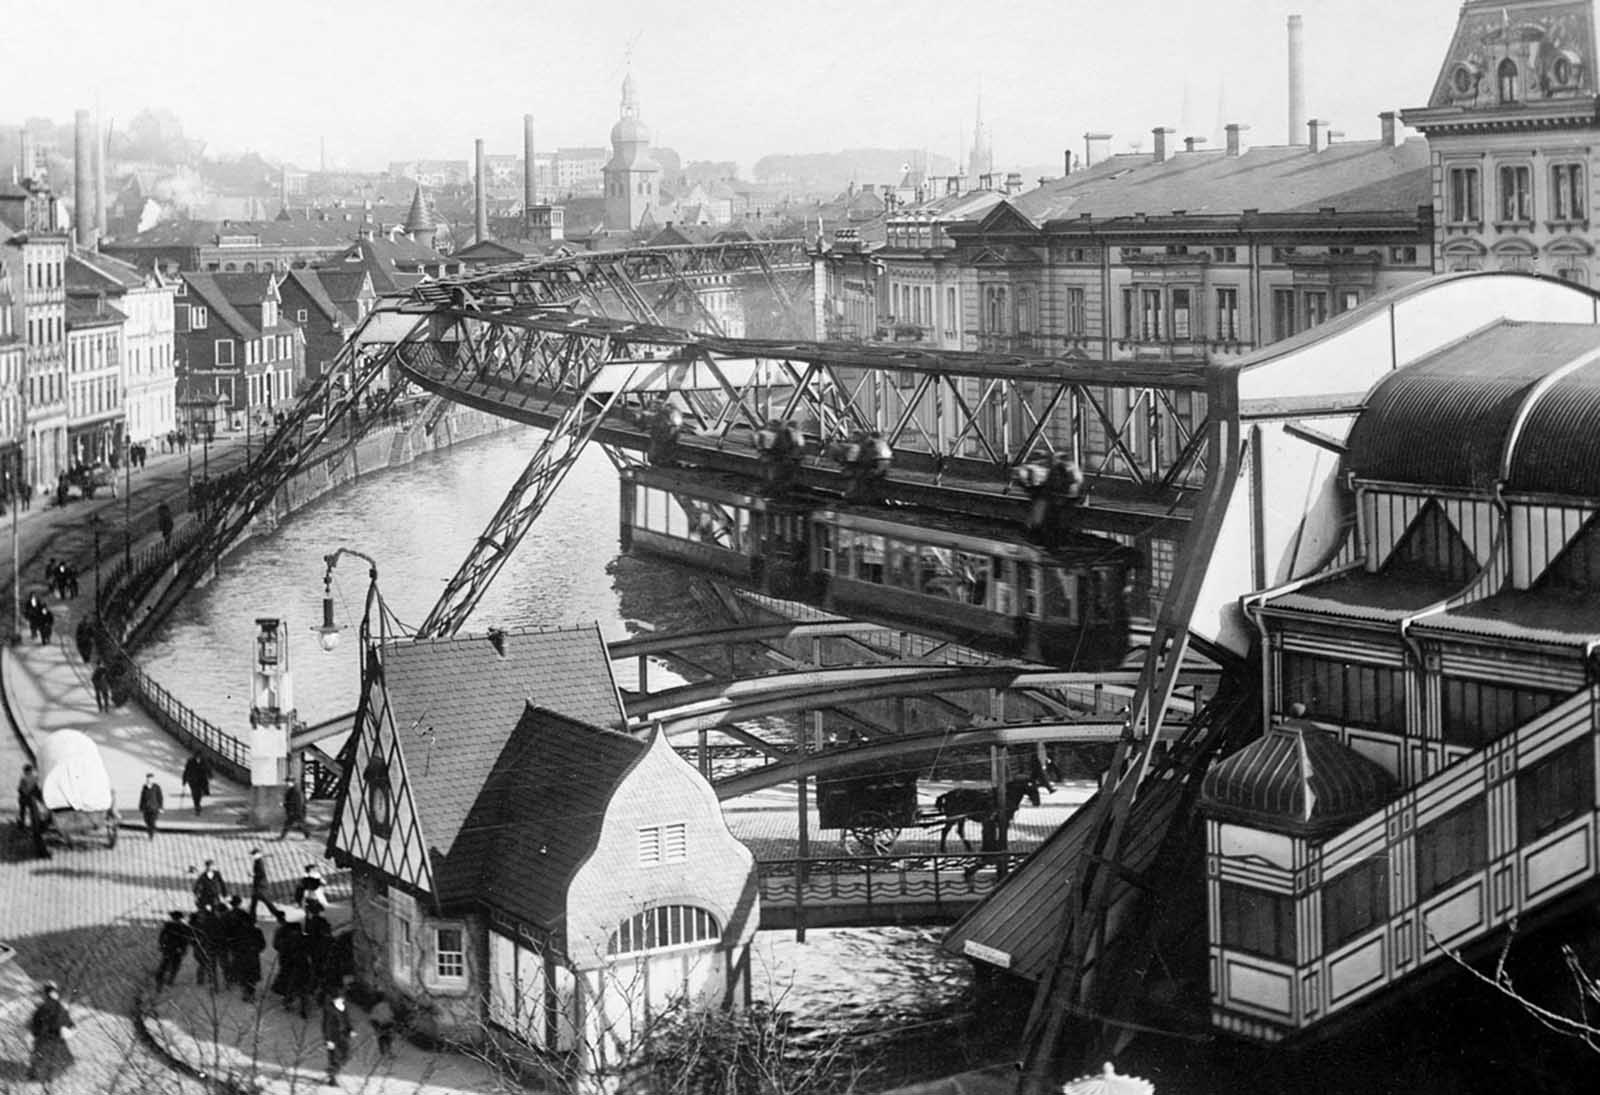 The Wuppertal Suspension Railway, perched above the river Wupper in the German town of Wuppertal, photographed on January 8, 1913.